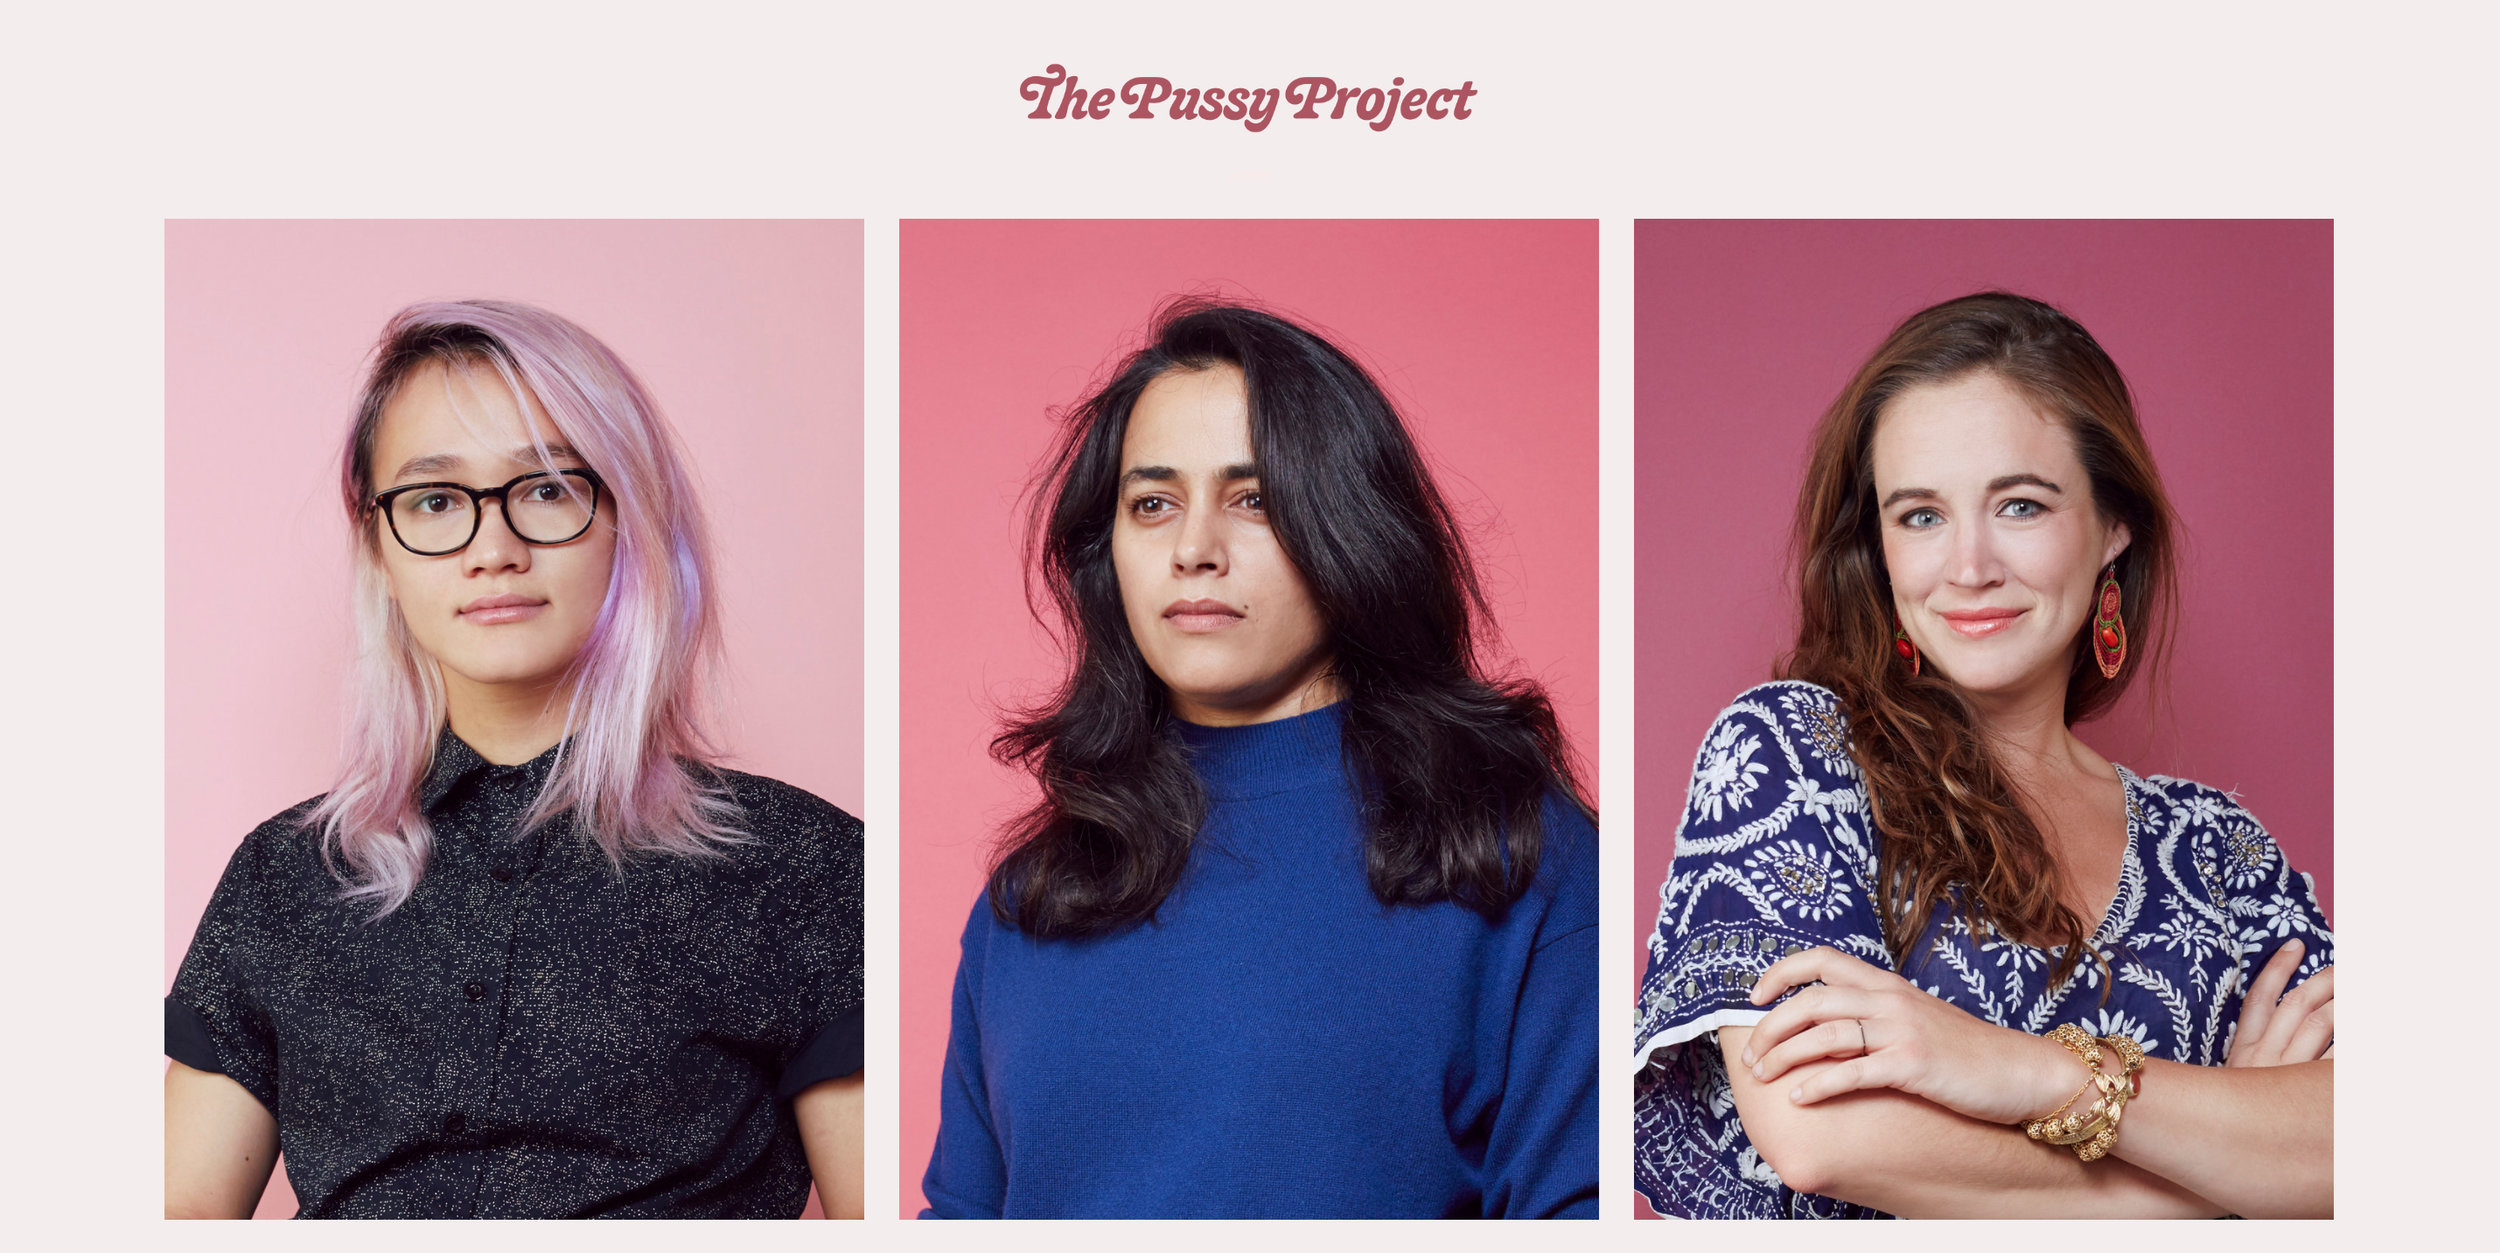 the-pussy-project-helena-price